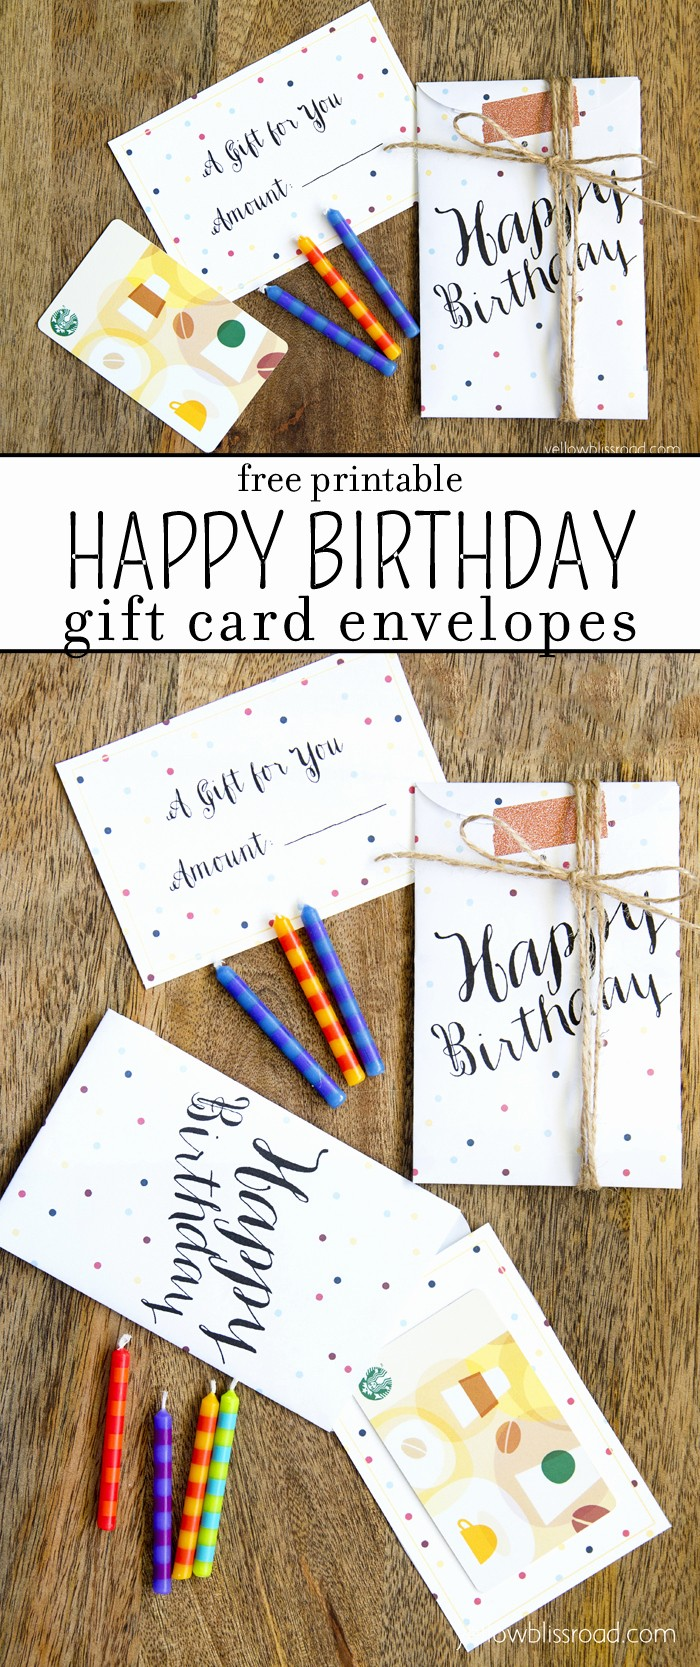 Free Printable Gift Cards Online Unique Free Printable Birthday Gift Card Envelopes Yellow Bliss